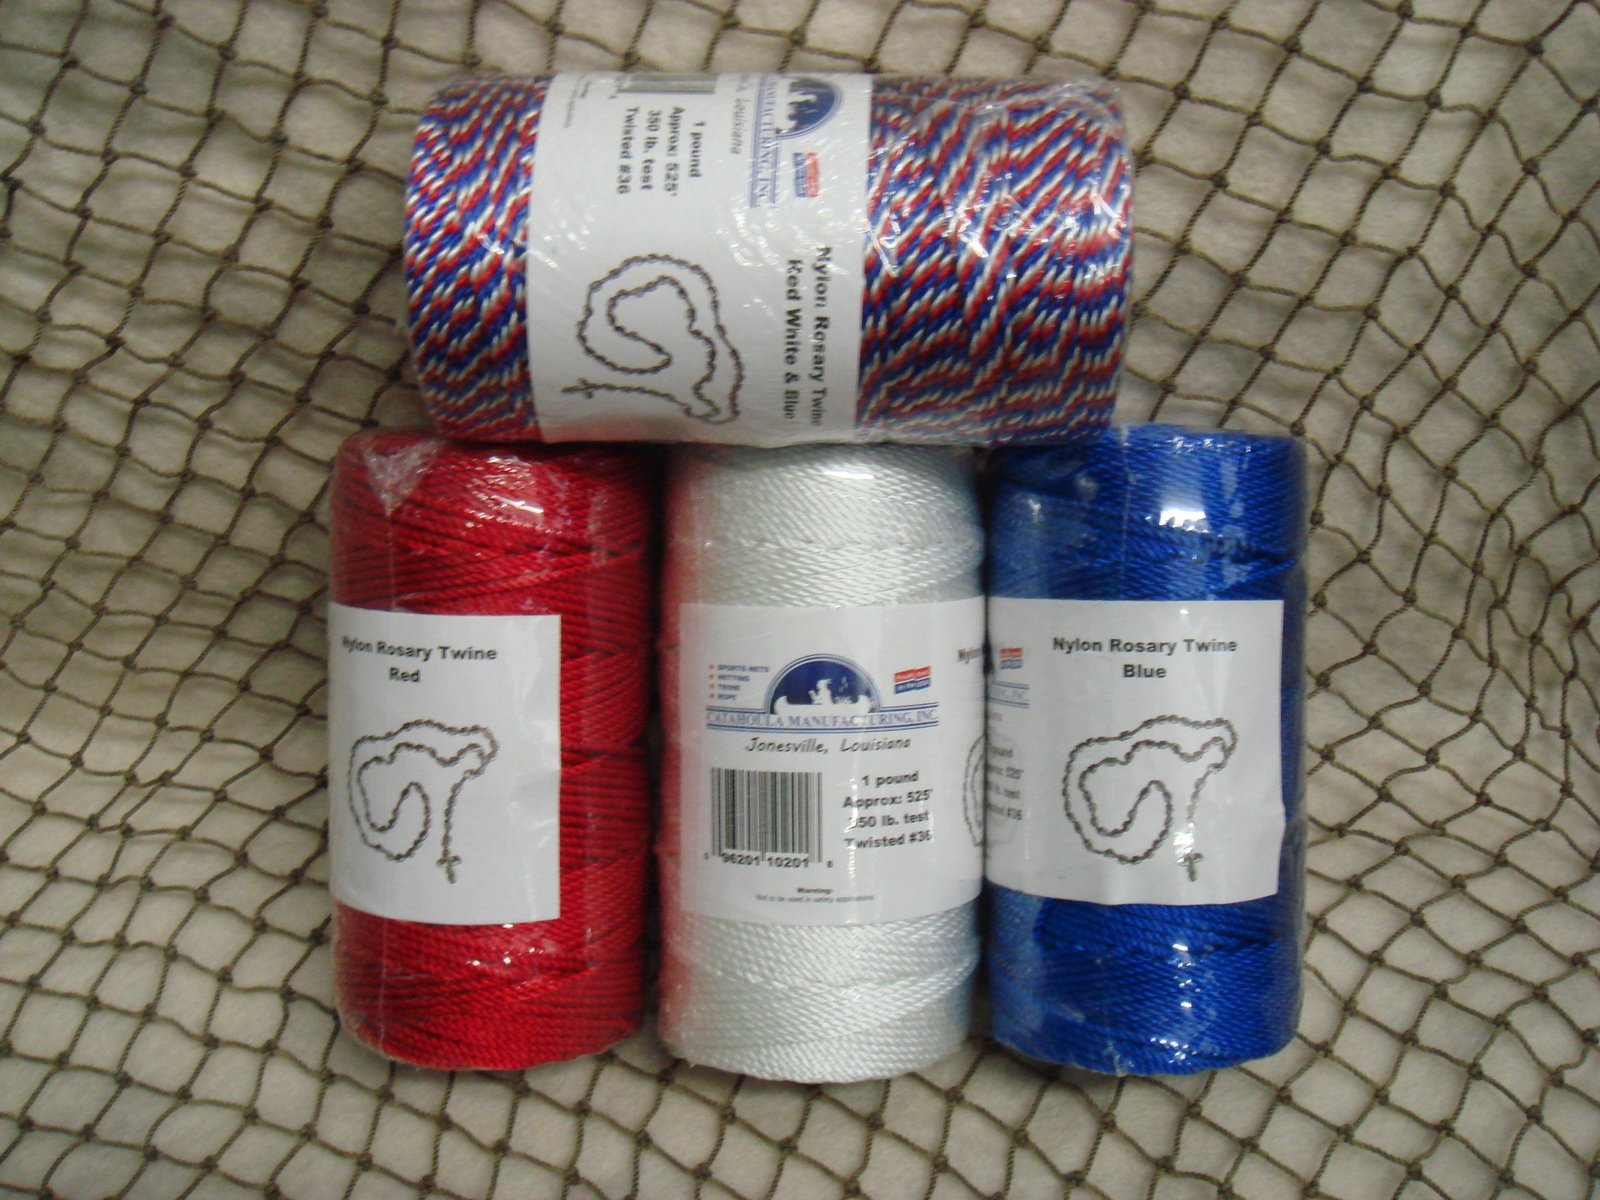 Rosary Twine, Size 36, available in 14 colors (Assorted, 2 White, 10 Mixed)